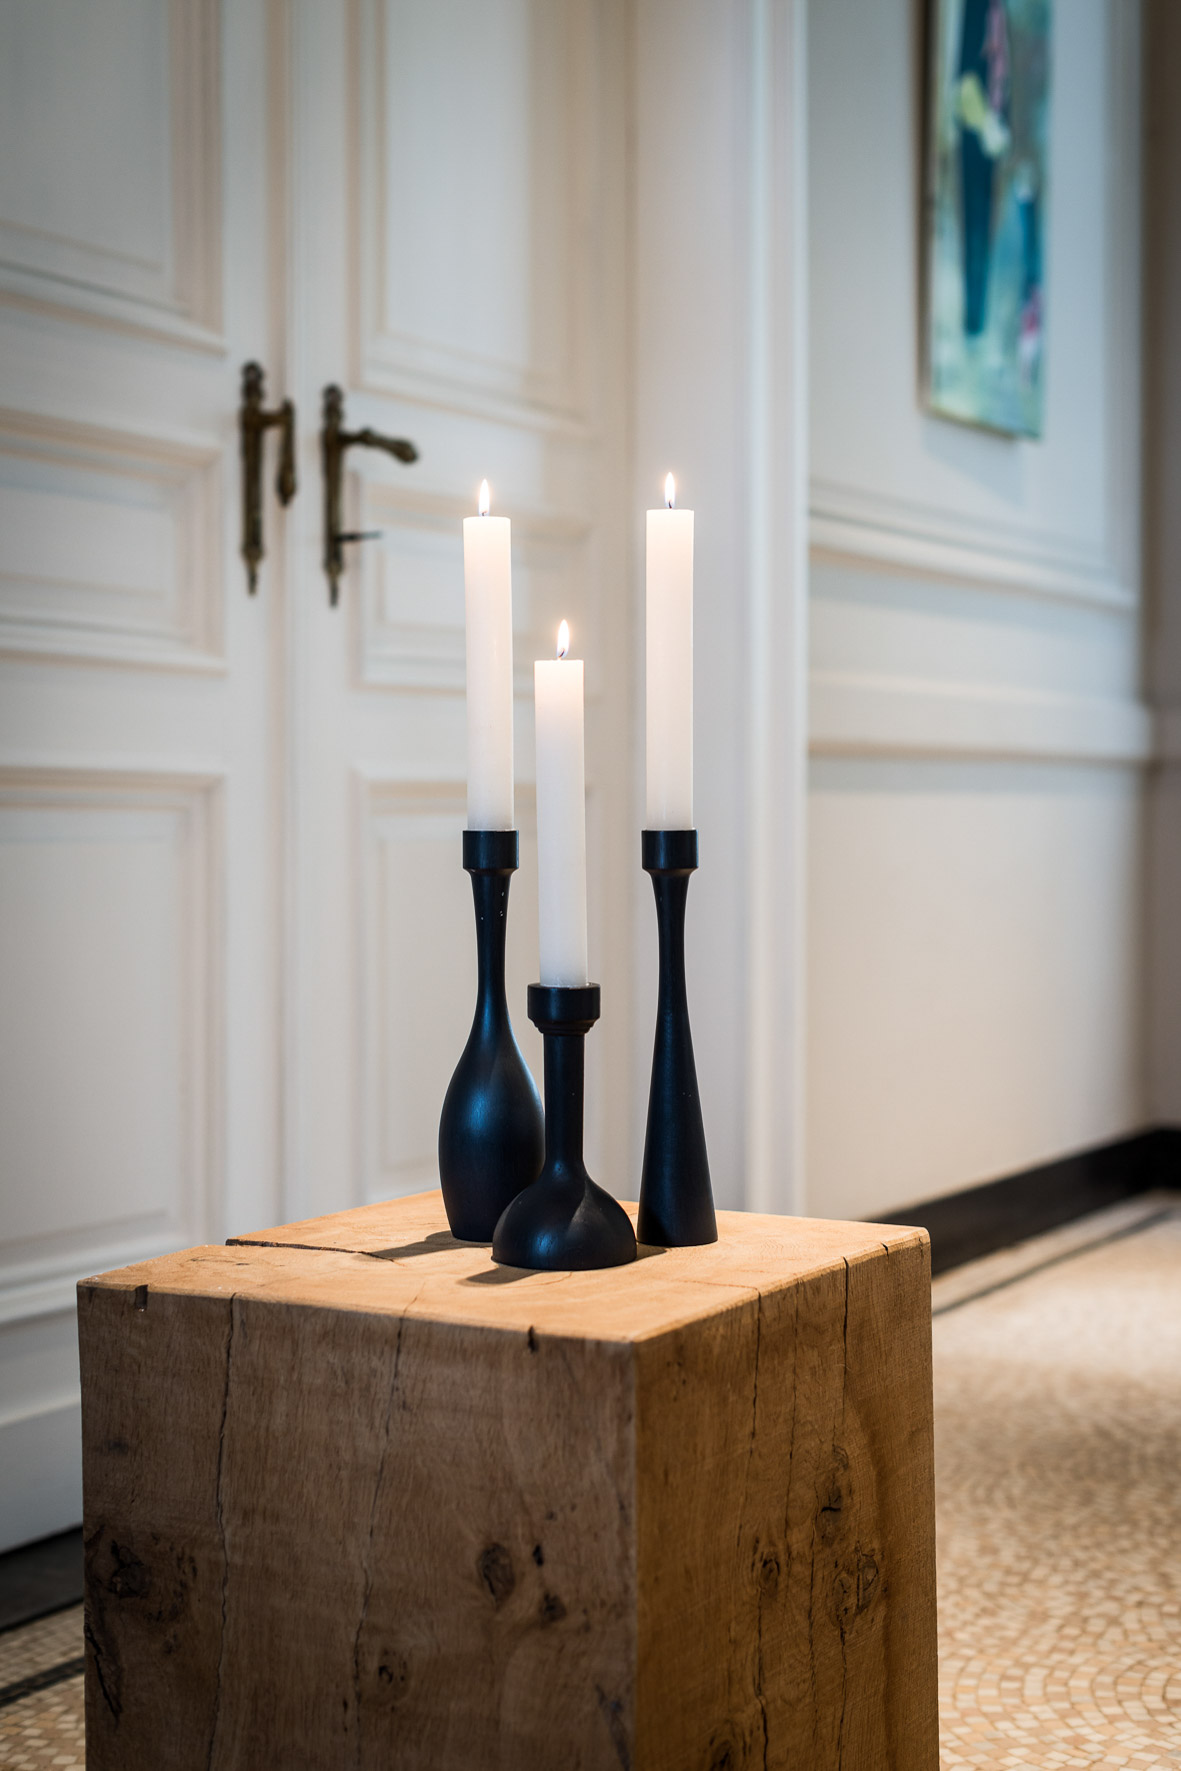 Victor Hélène solid oak candleholders in Black Oxide natural paint Simpla 162 and Konturo and Silueto